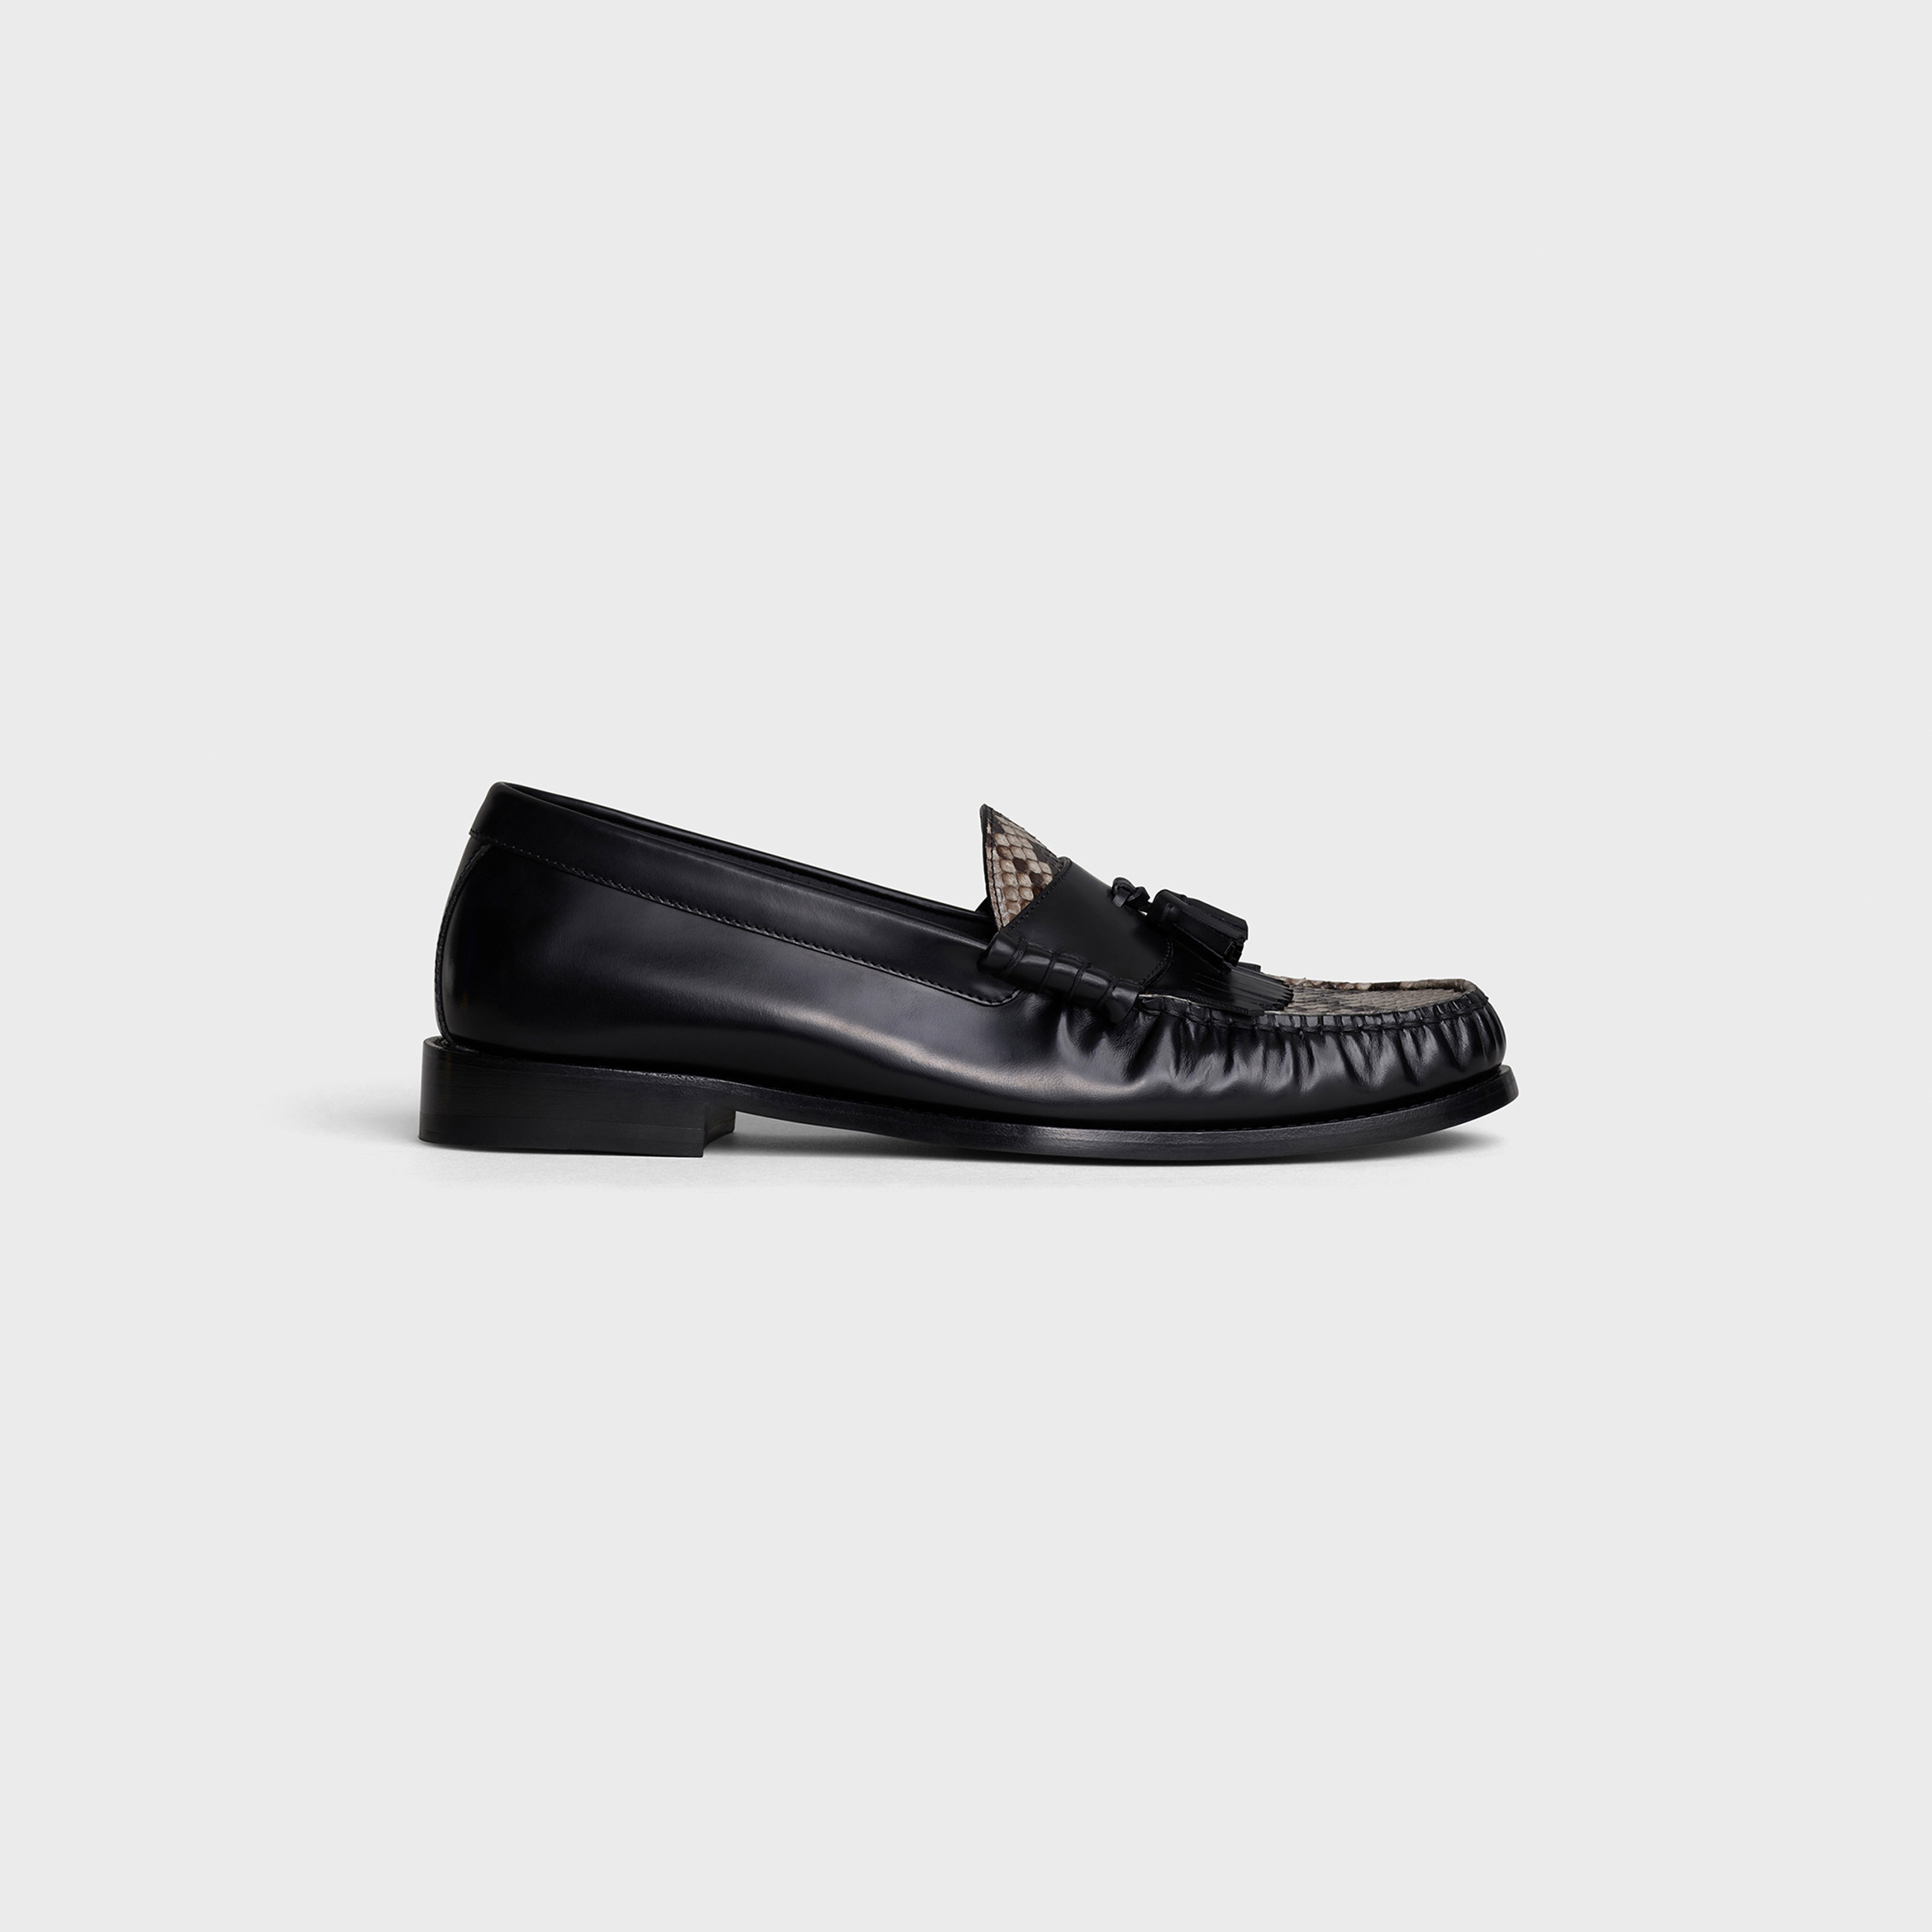 CELINE LUCO Loafer in Polished calfskin & Shiny python | CELINE